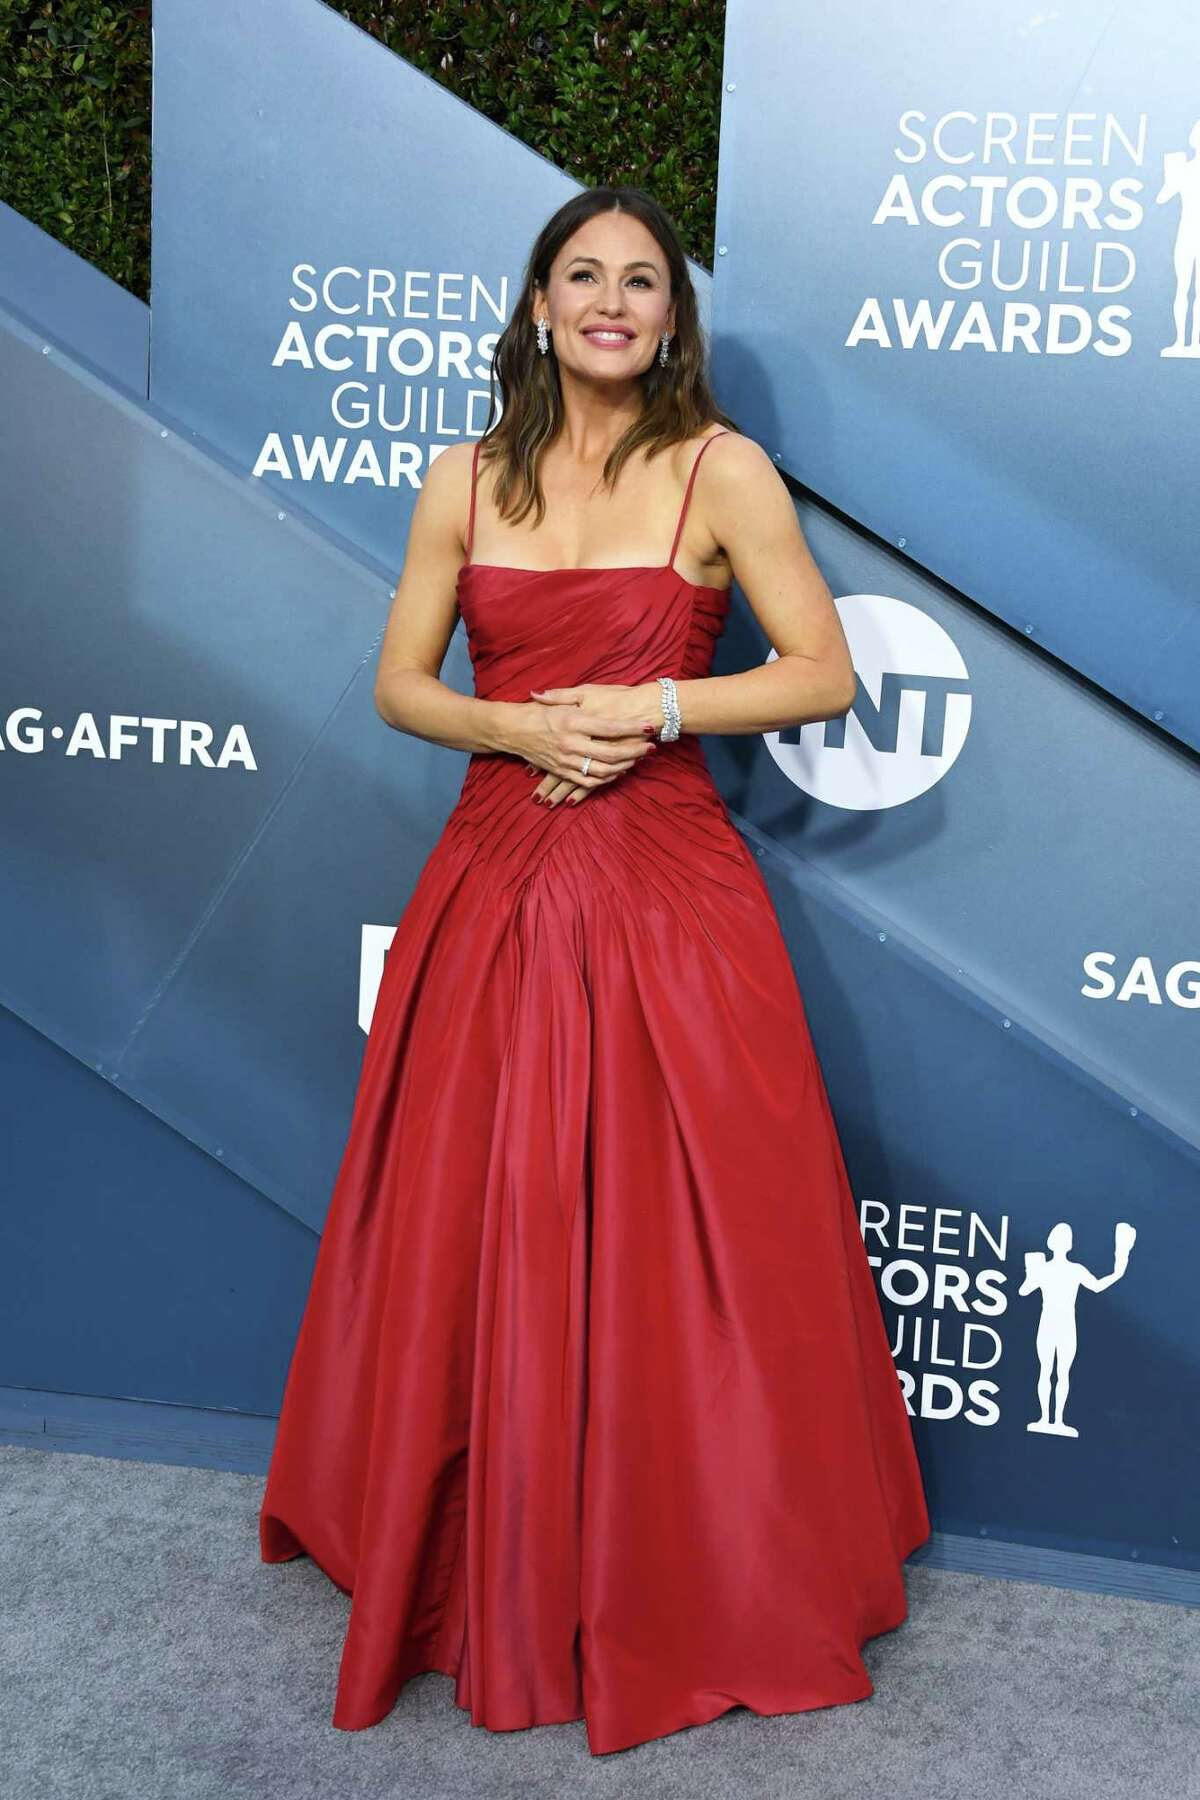 Jennifer Garner is a Texas native with her very own star on the Hollywood Walk of Fame. >>>See other Texans on the showbiz landmark.